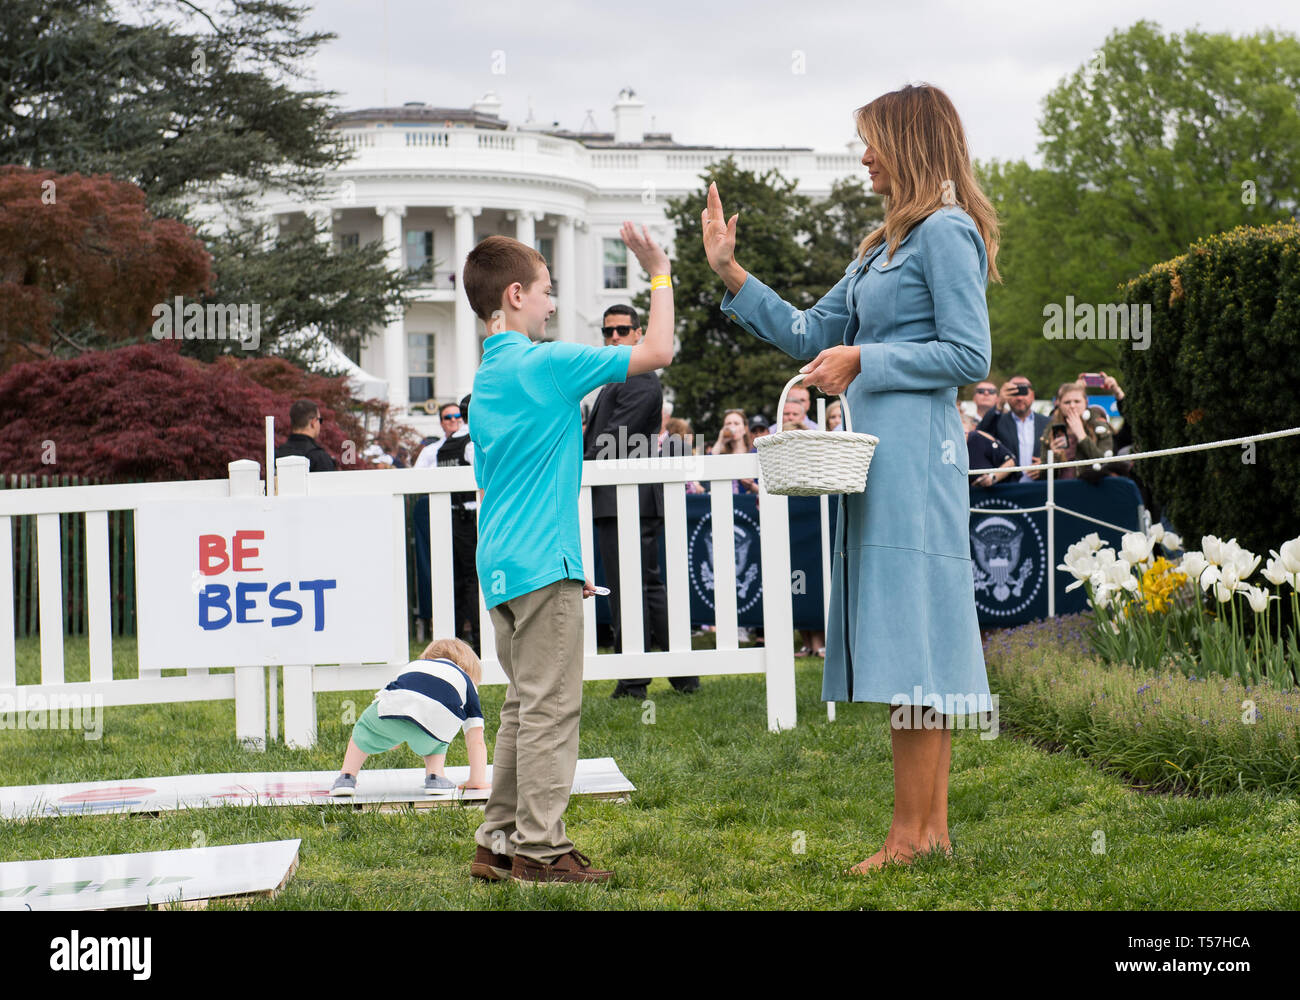 Washington, United States Of America. 22nd Apr, 2019. A child 'high fives' First Lady Melania Trump during the White House Easter Egg Roll at the White House in Washington, DC on April 22, 2019. Credit: Kevin Dietsch/Pool via CNP | usage worldwide Credit: dpa/Alamy Live News - Stock Image